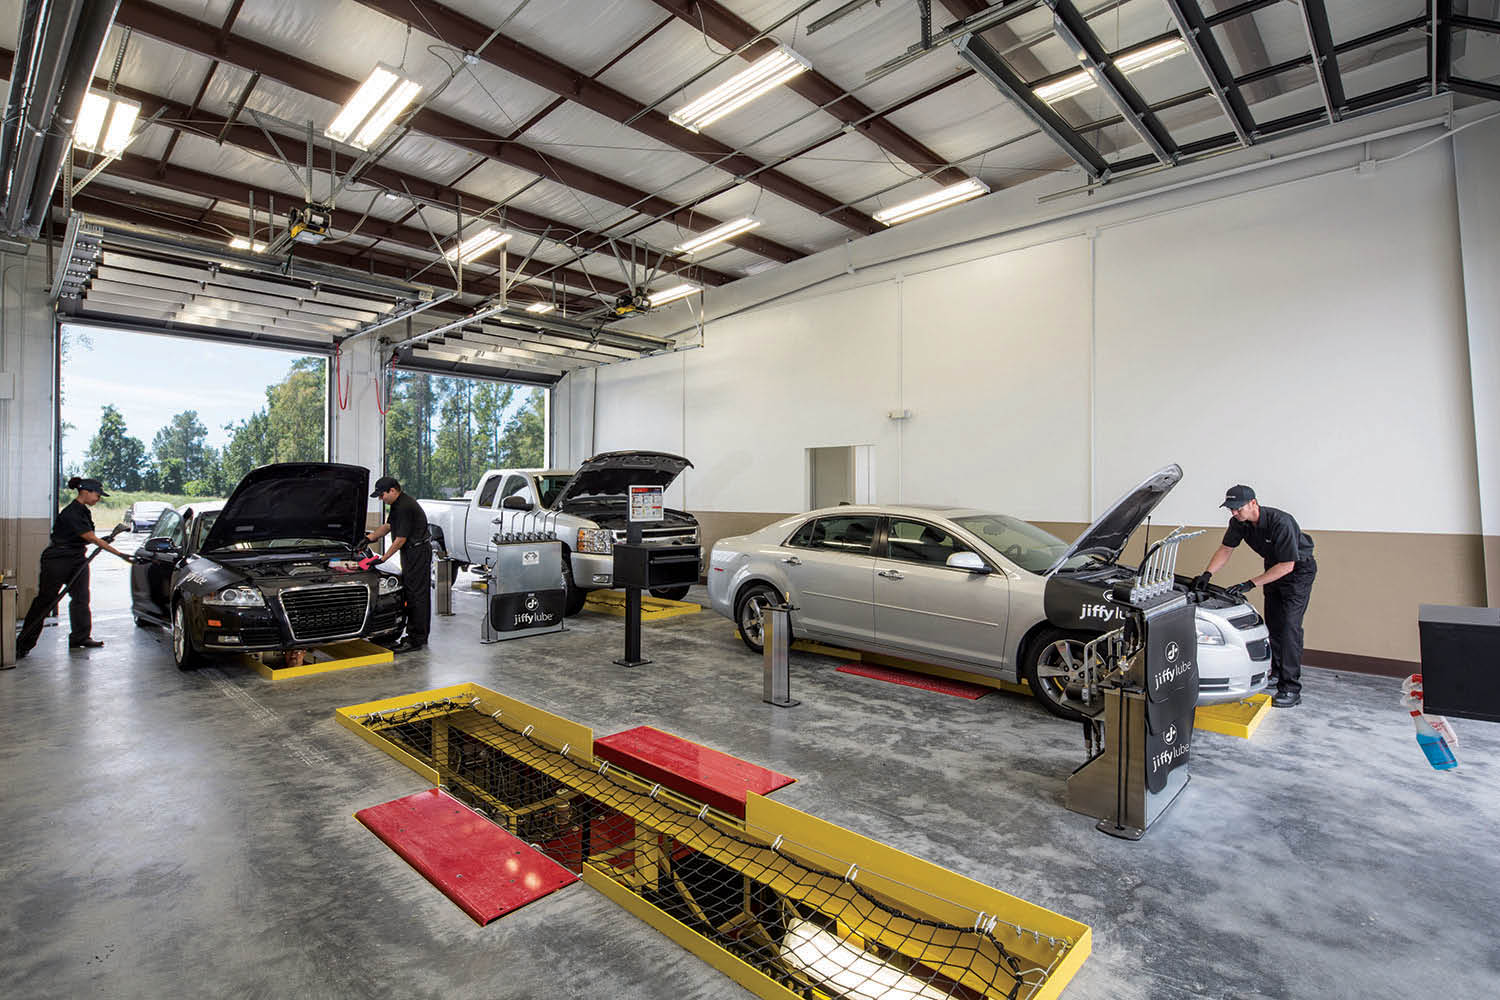 Jiffy Lube auto technicians working on cars in the garage